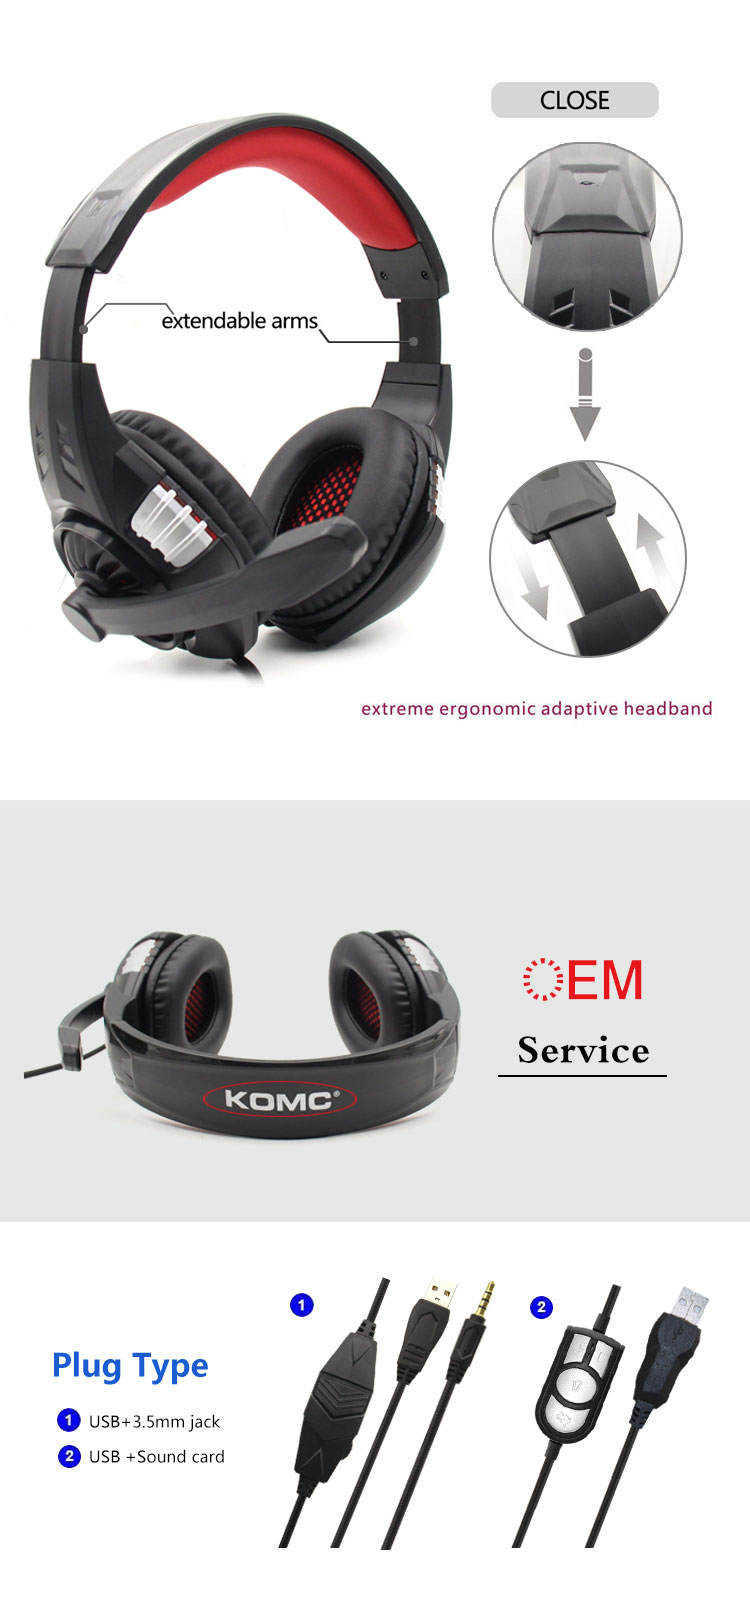 2020 Hot Sale Black Game Headset headphones with Mic for Gaming, gaming head sets